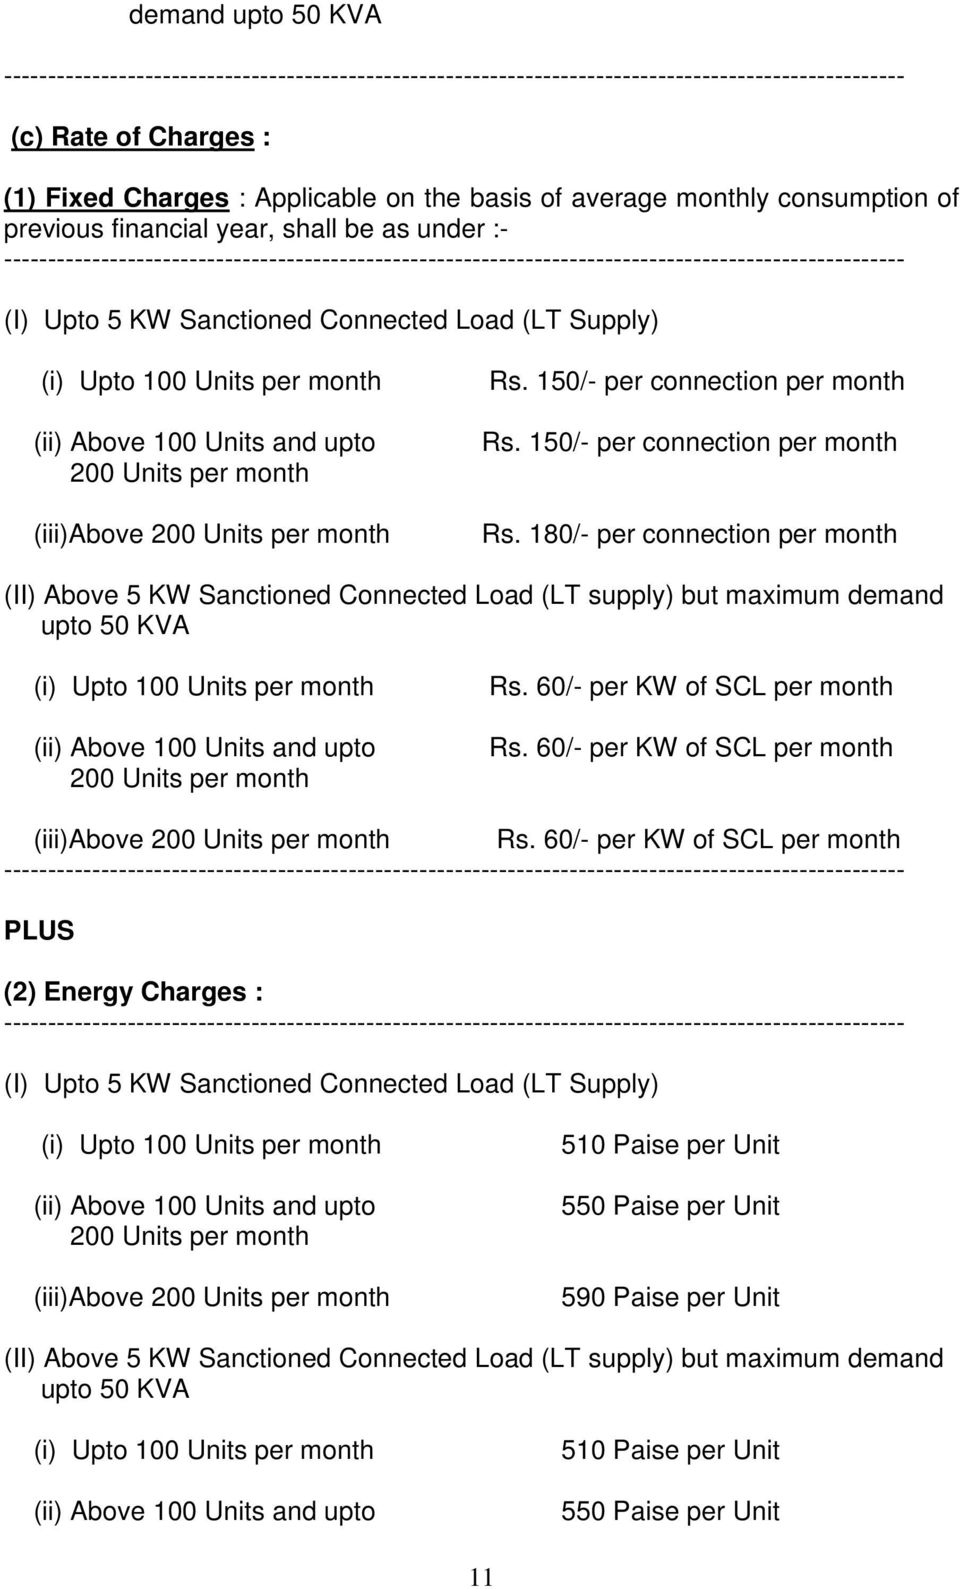 Connected Load (LT Supply) (i) Upto 100 Units per month (ii) Above 100 Units and upto 200 Units per month (iii)above 200 Units per month Rs. 150/- per connection per month Rs.